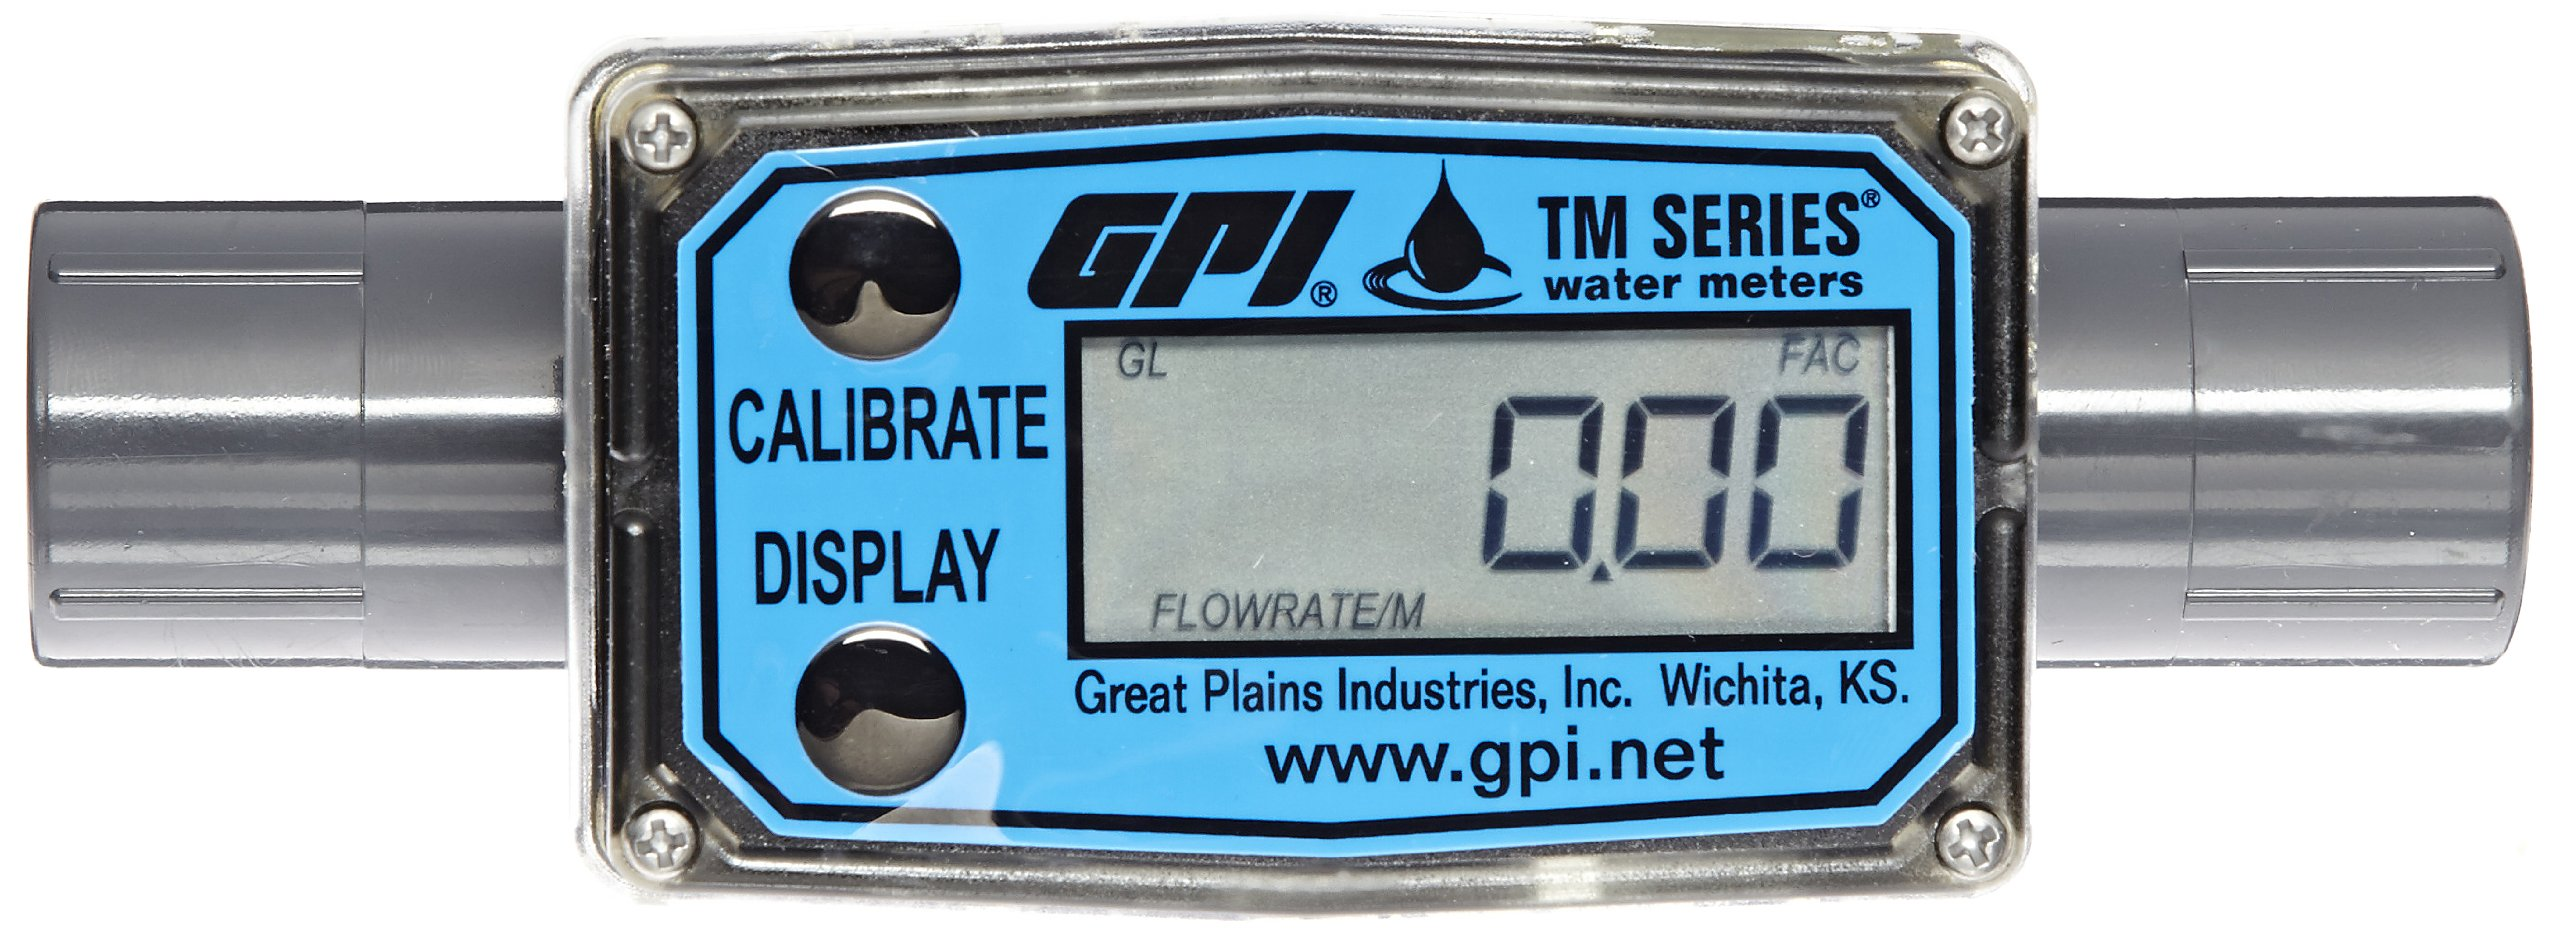 FLOMEC TM050-N, 1/2 inch Turbine Meter, Battery Operated Display with Rate and 2 Total Register, PVC, 1 to 10 GPM Flow Range